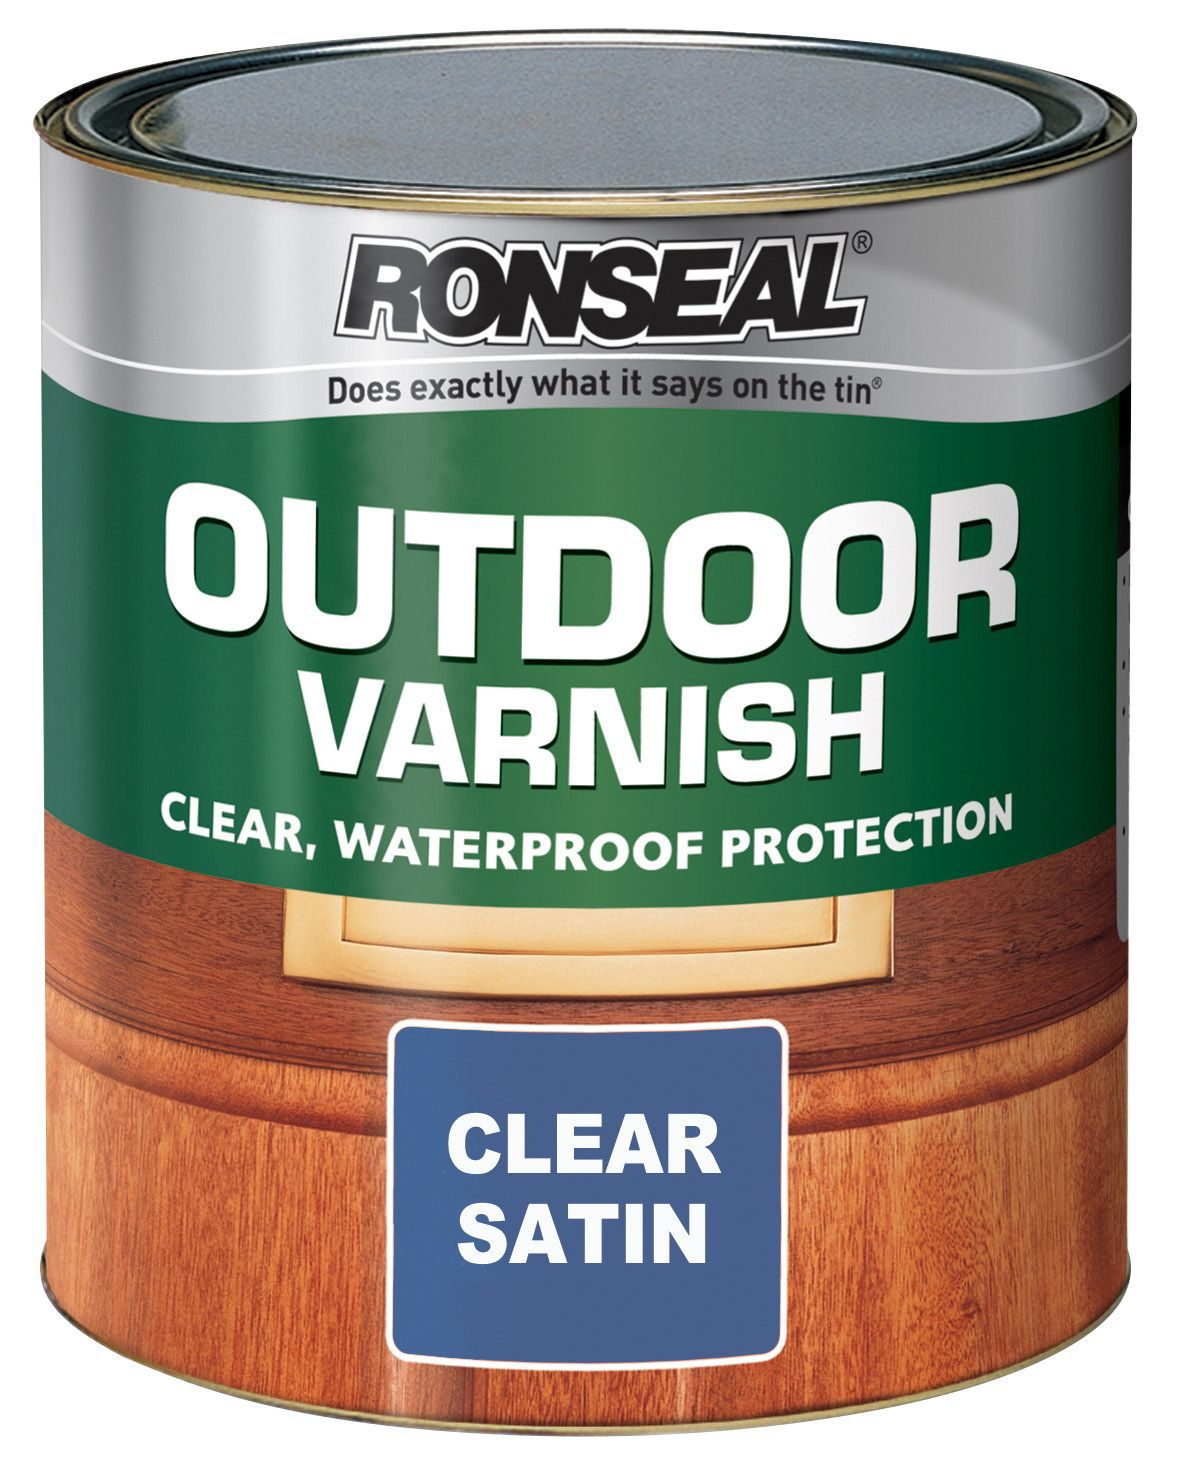 Ronseal Satin Outdoor Varnish 2500ml Departments Diy At B Q